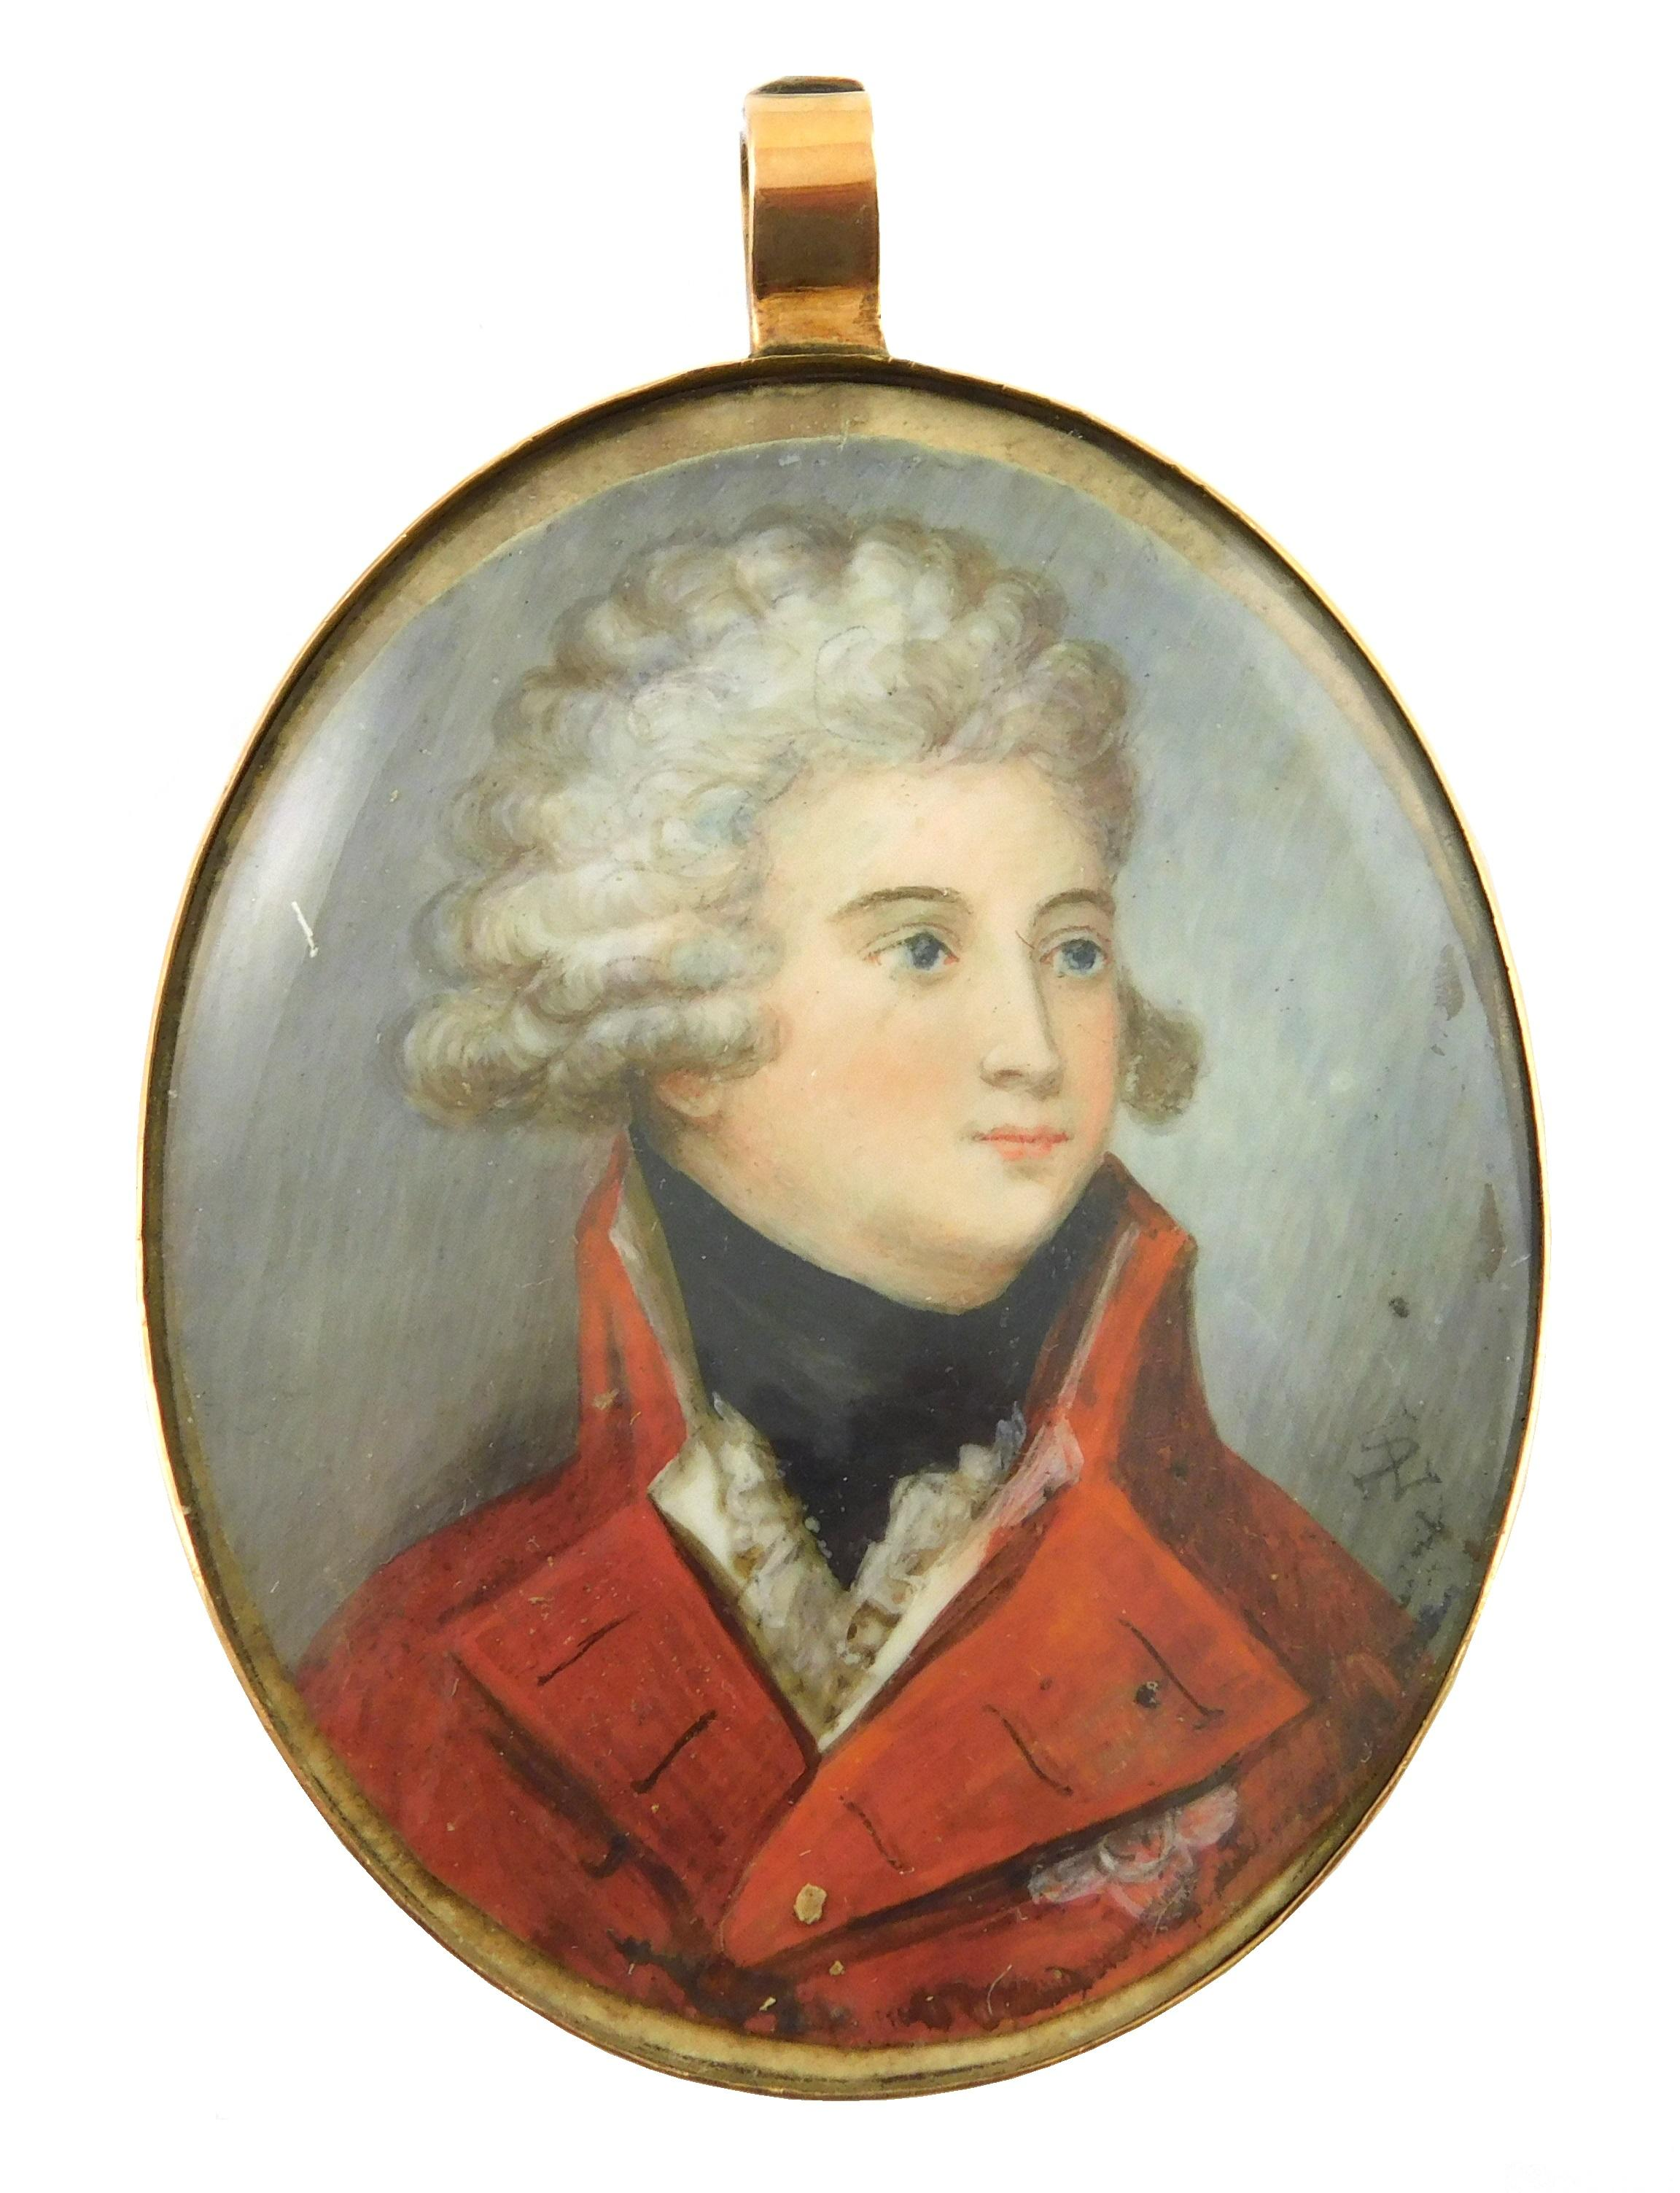 MINIATURE: Military gentleman, oval support, powdered wig, red jacket with standing collar, black neck cloth, monogrammed with inter...